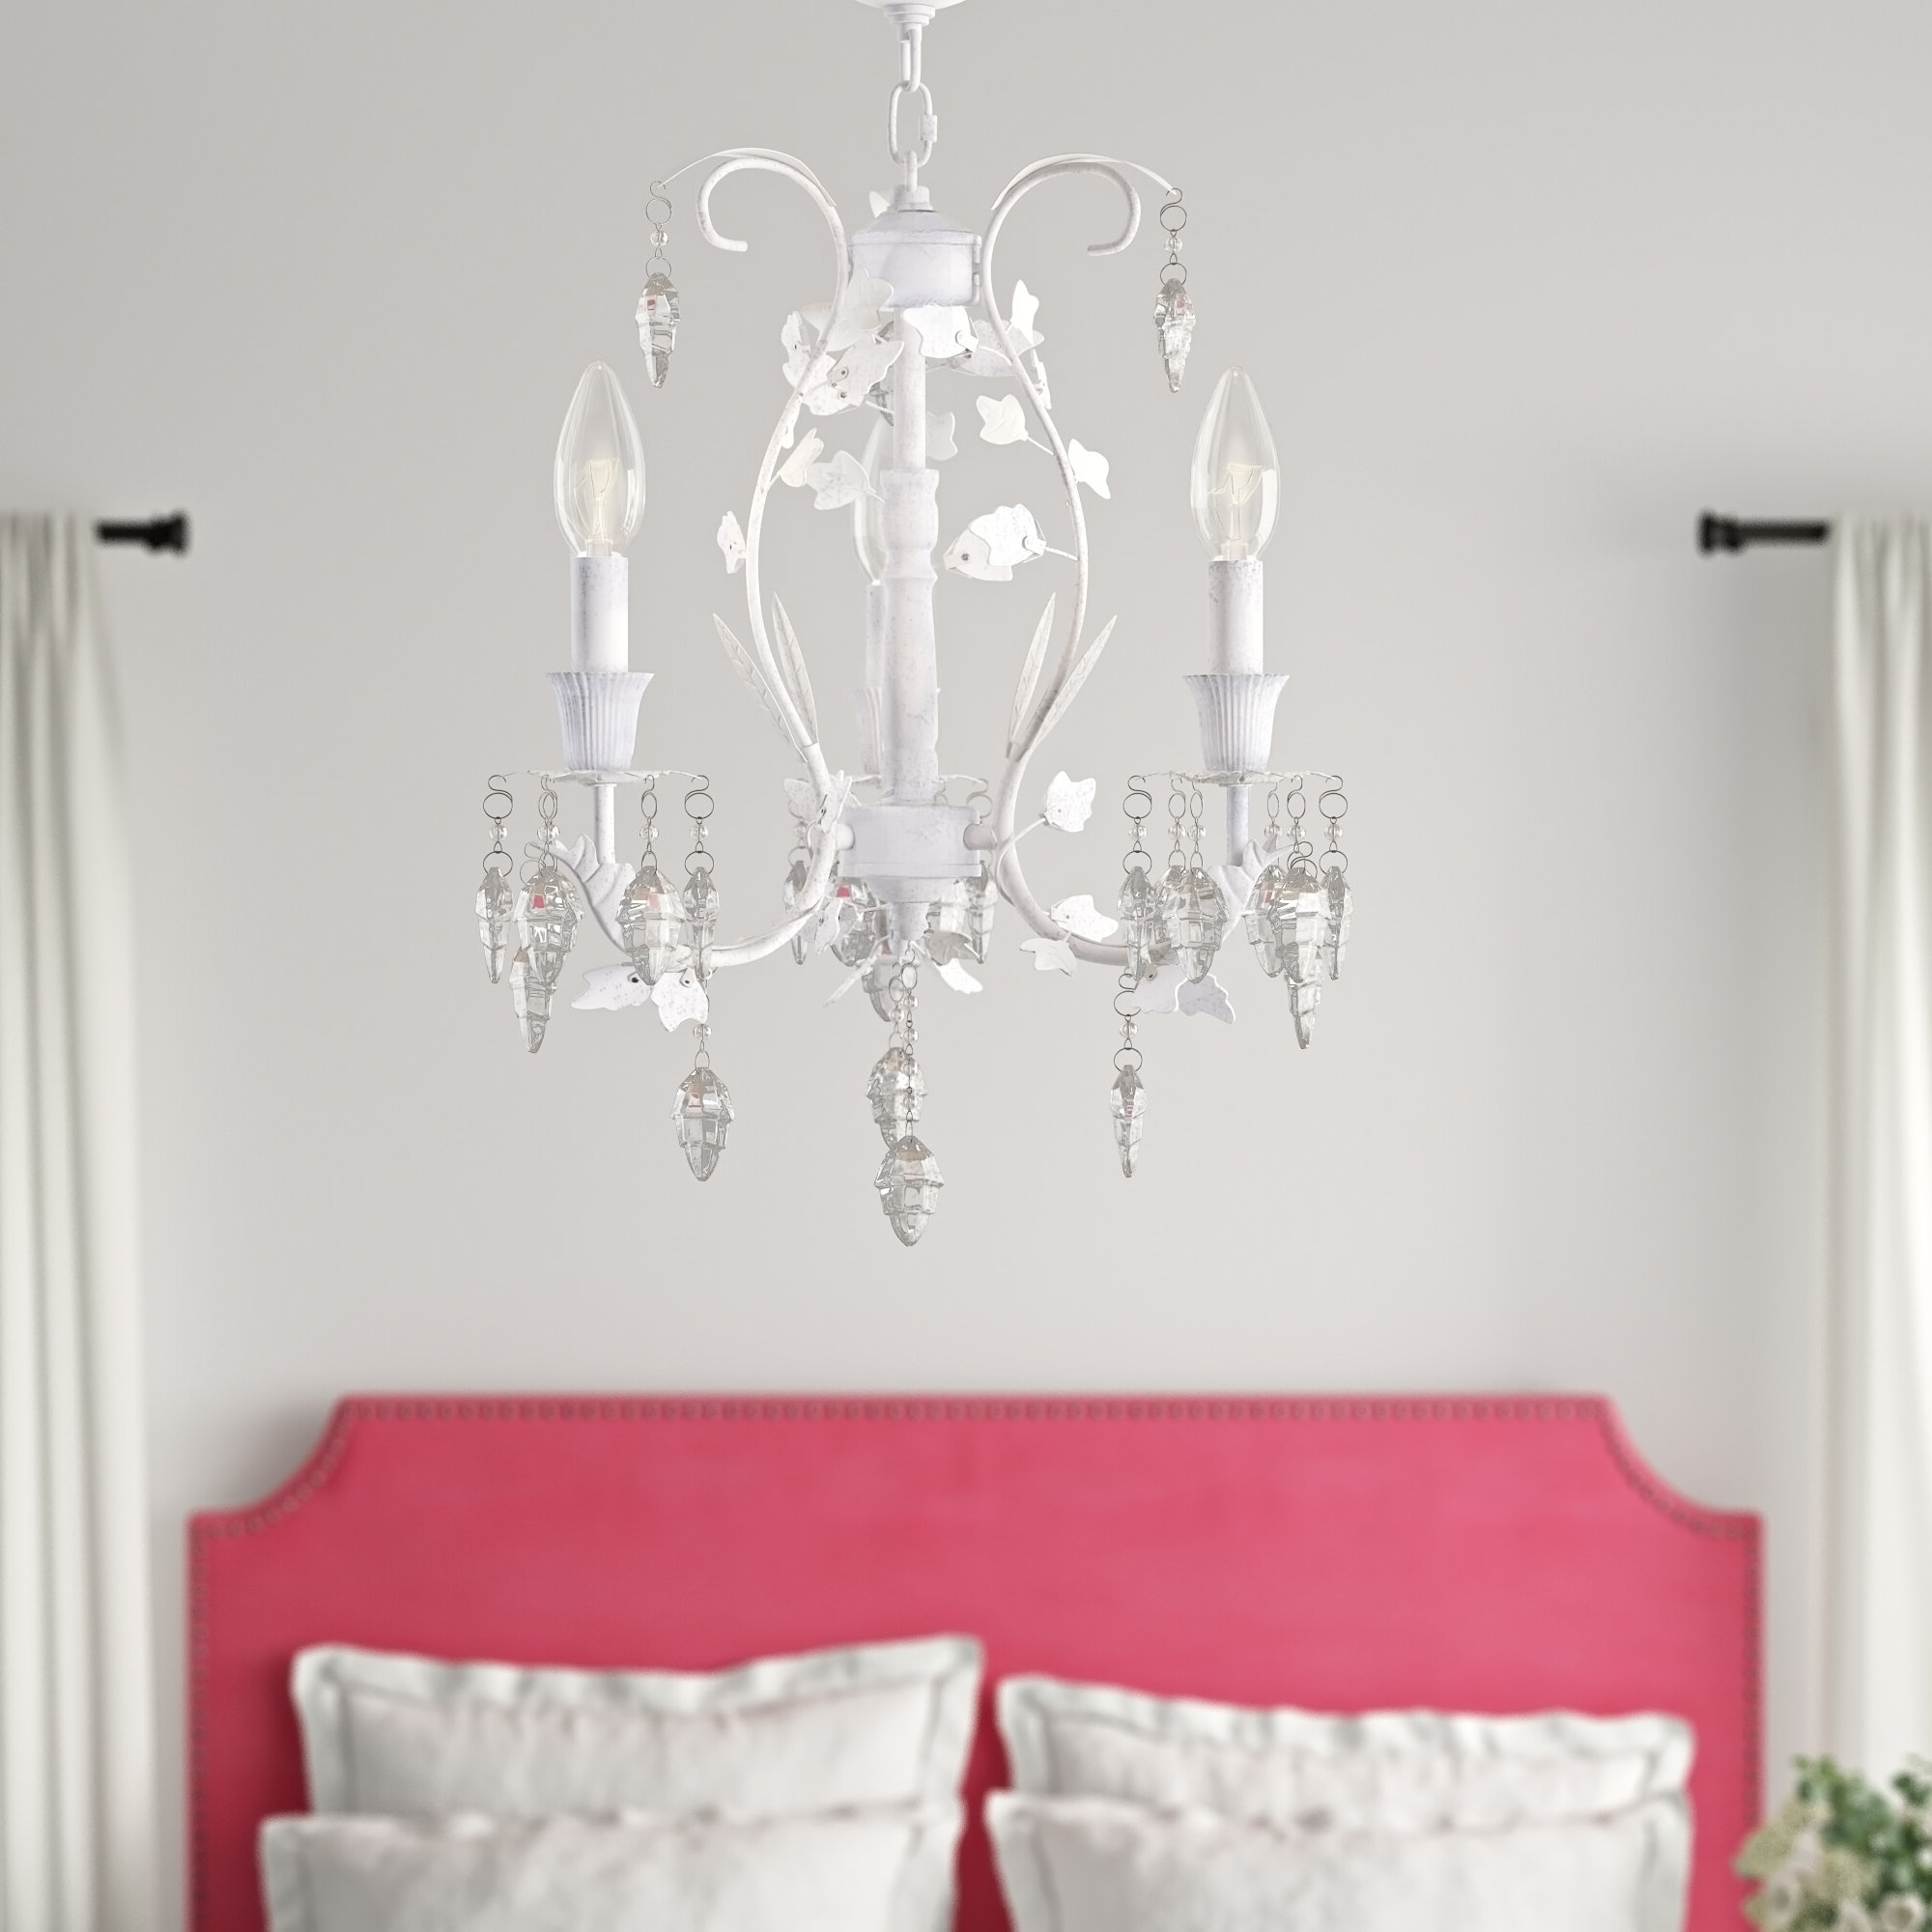 Dilley 1-Light Unique / Statement Geometric Pendants within Trendy Dexter 3-Light Candle Style Chandelier